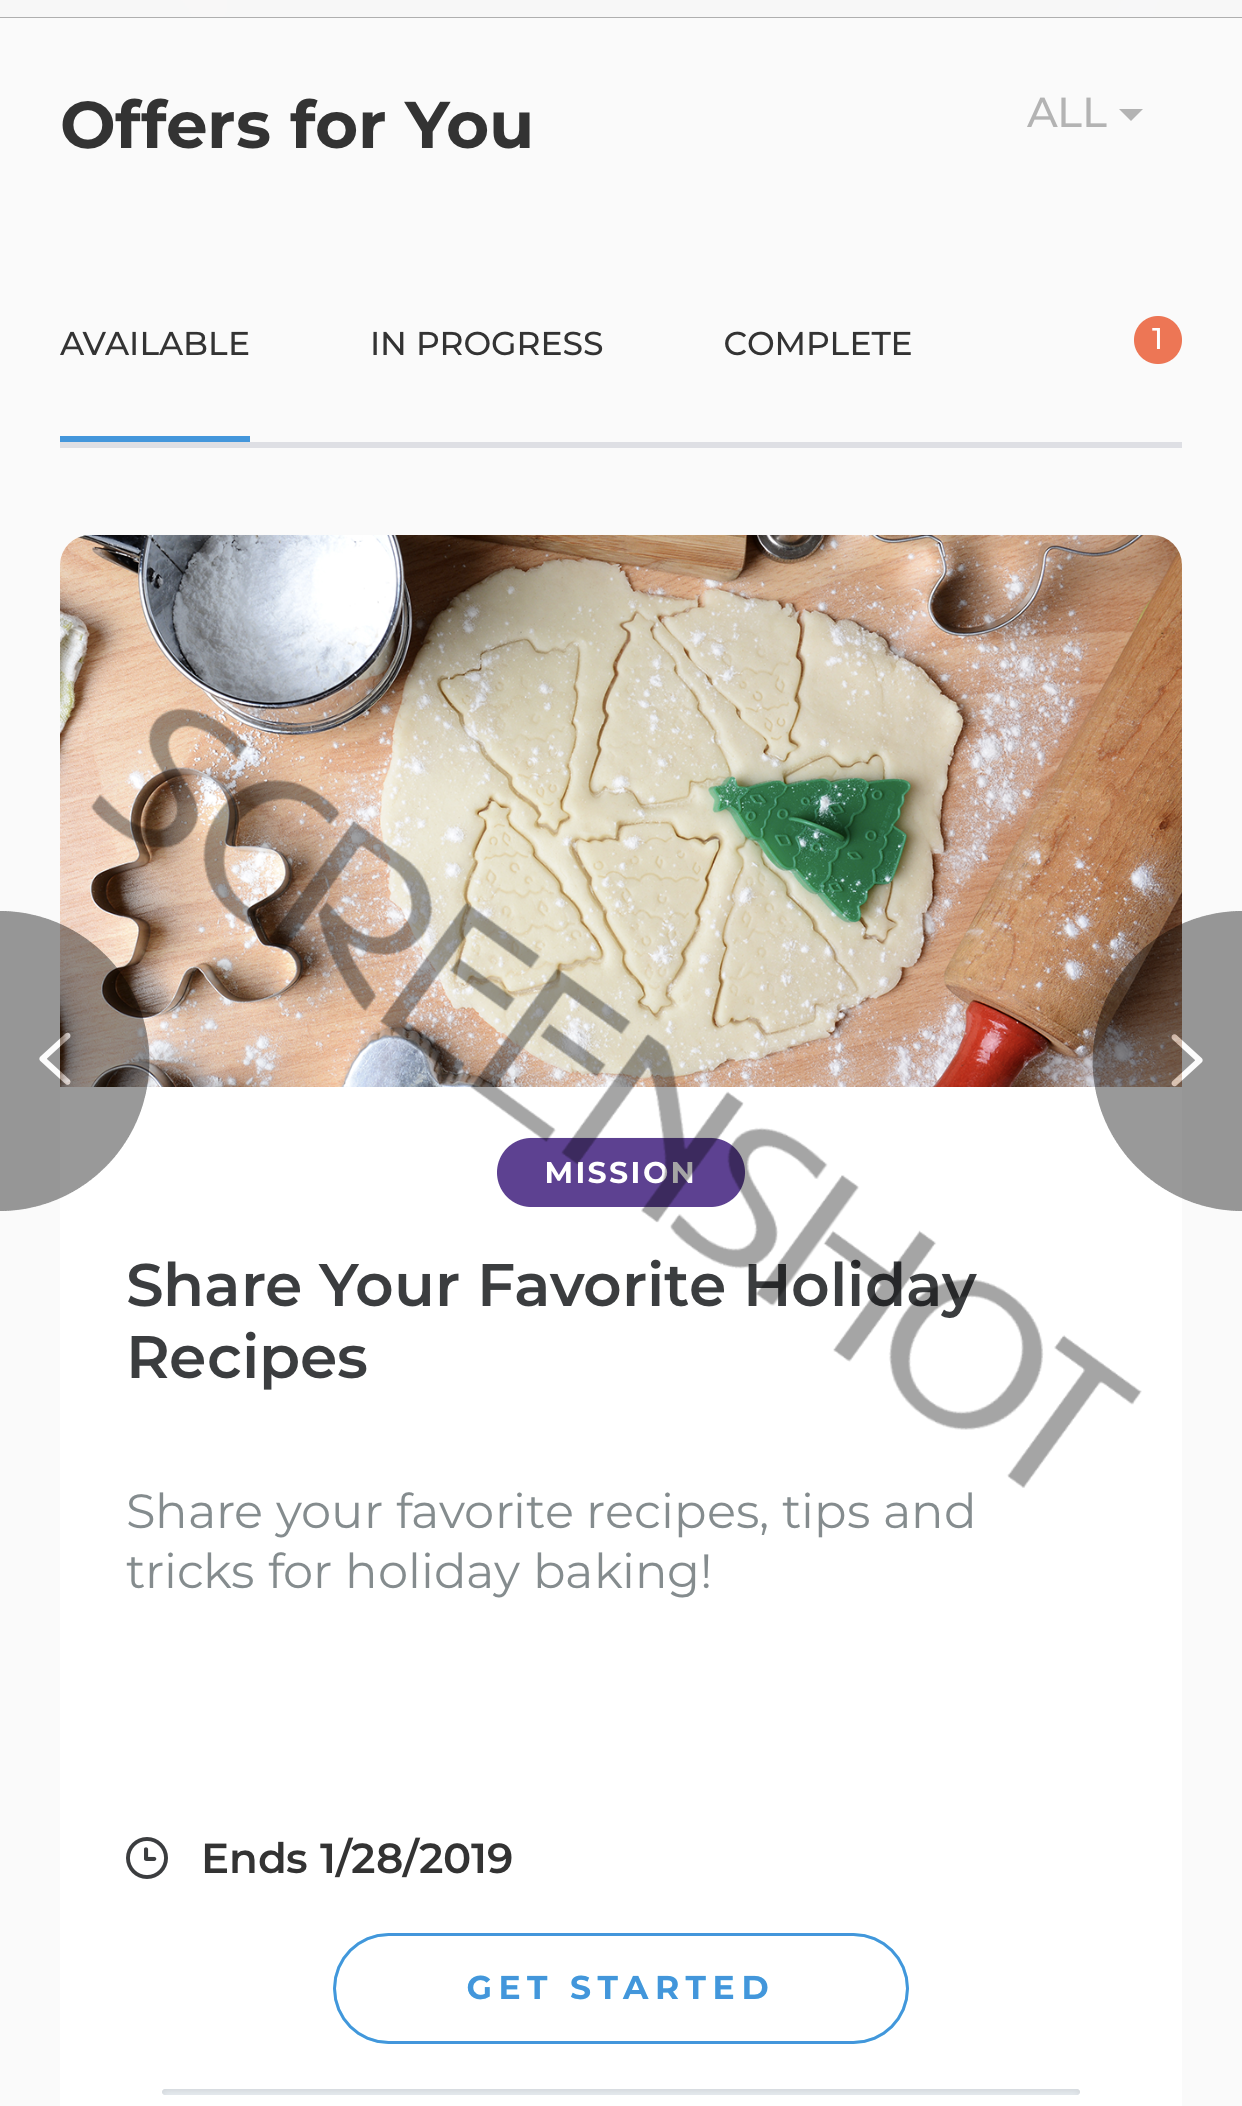 Share Your Favorite Holiday Recipes